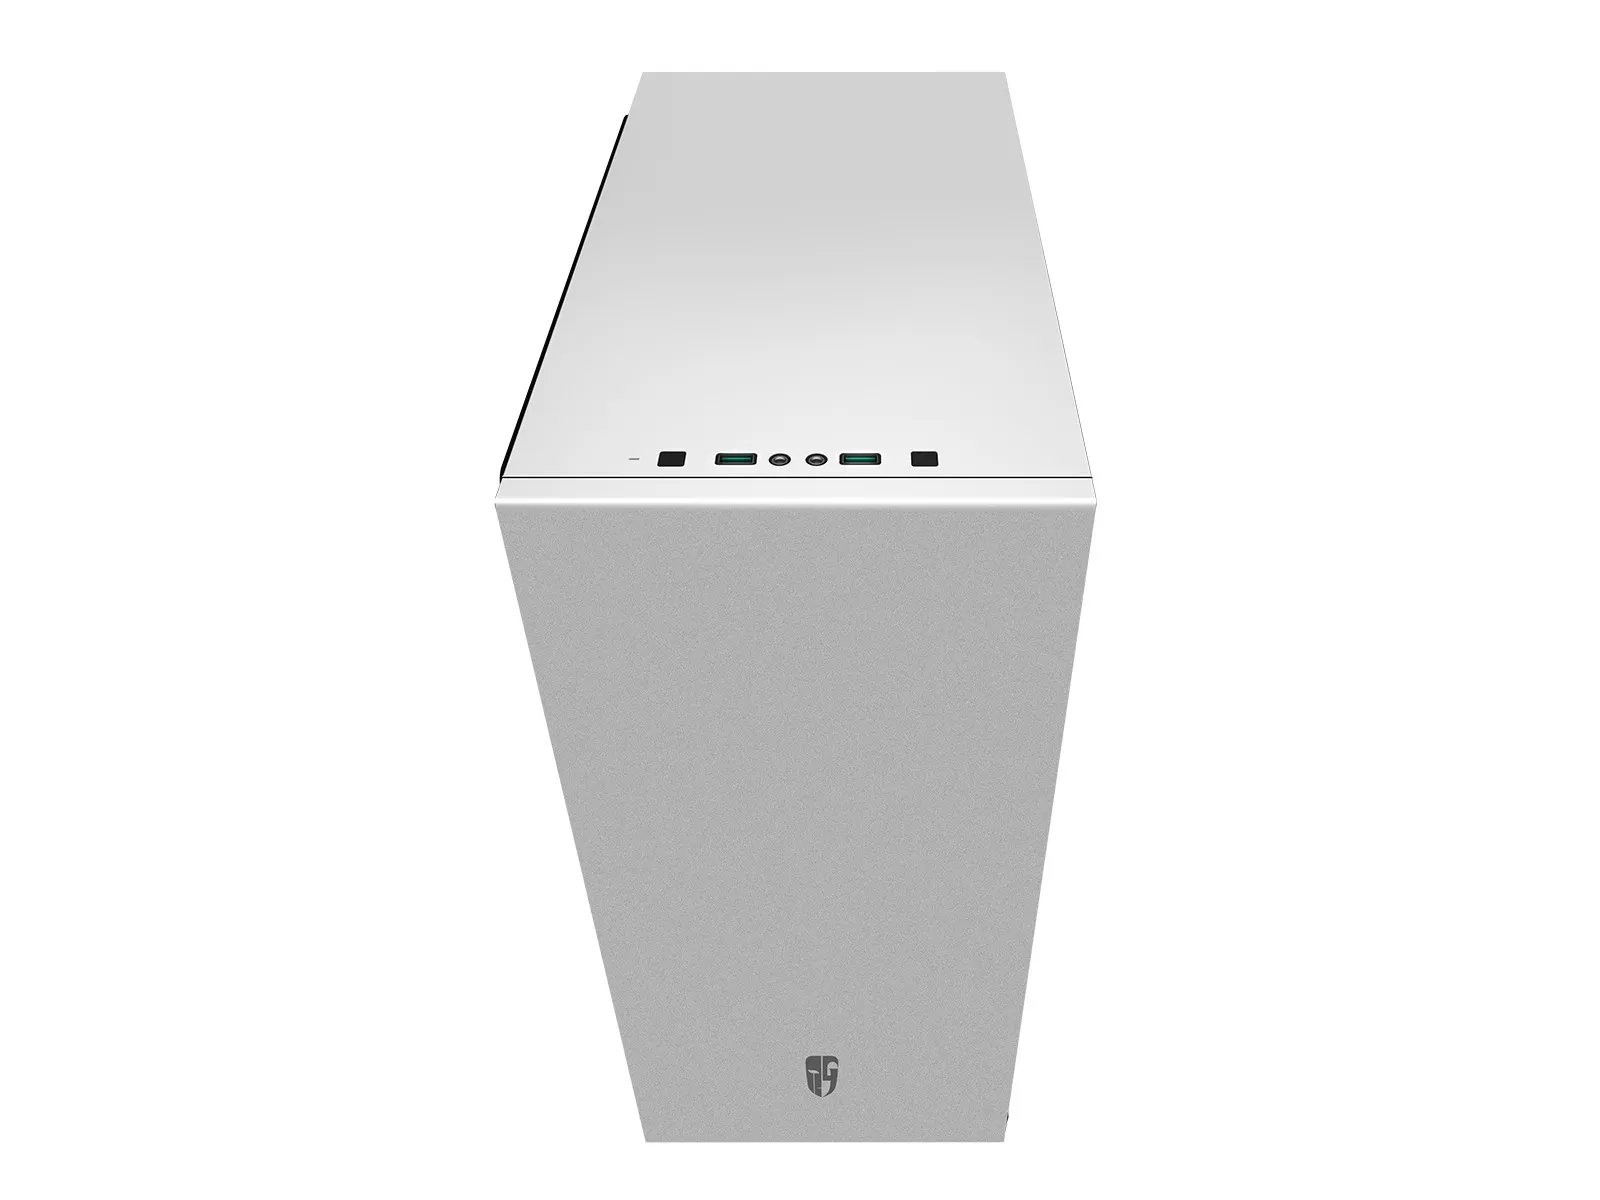 Gabinete Gamer DeepCool Macube 310 Mid Tower GS-ATX-MACUBE310 Branco